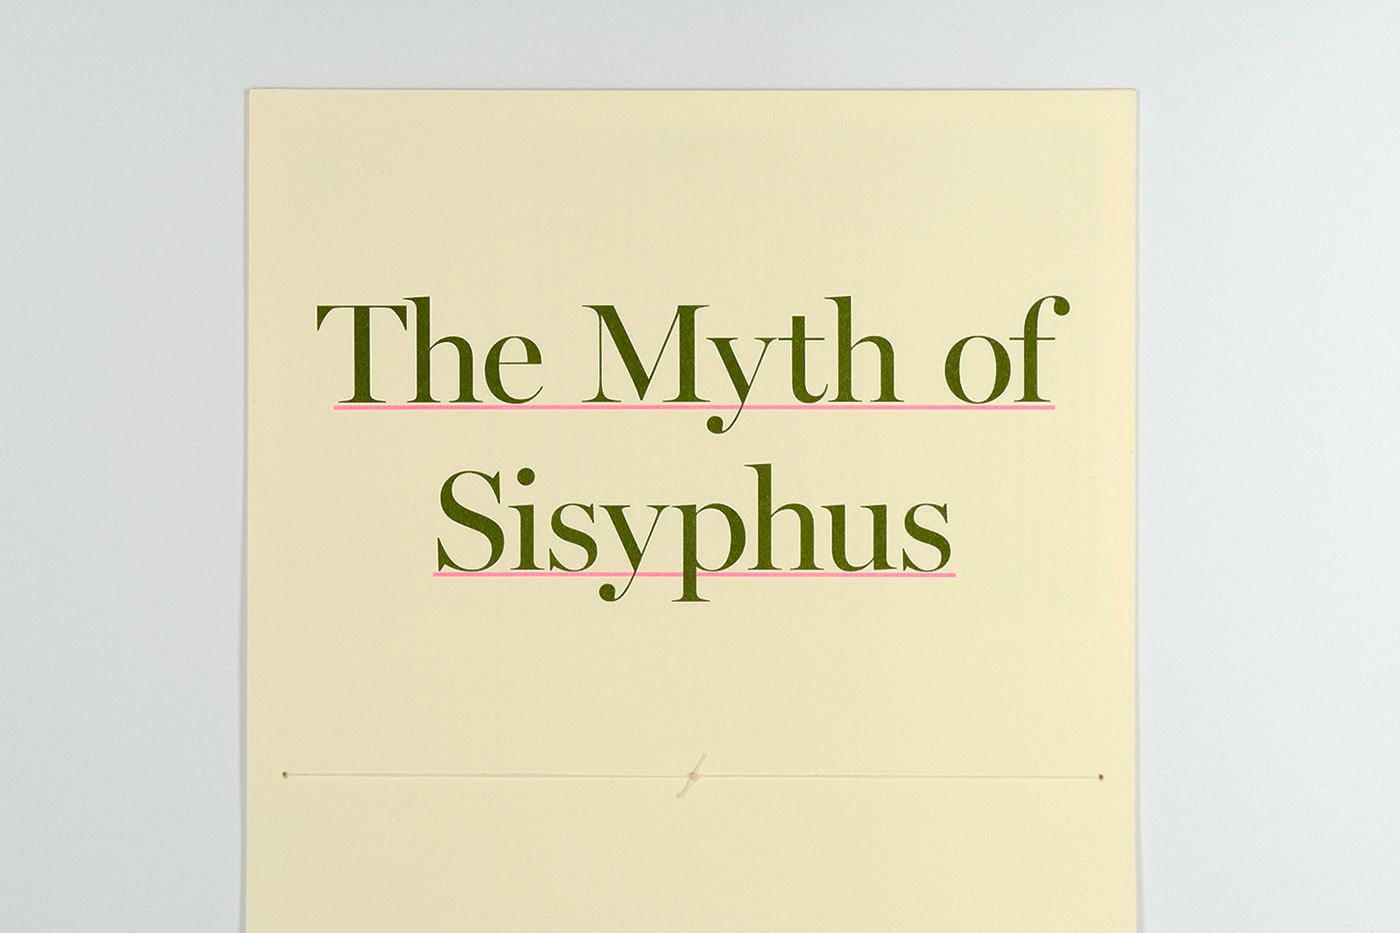 The Myth Of Sisyphus On Behance The Essay The Myth Of Sisyphus By Albert Camus Forms The Basis For This  Booklet Camus Essay Compares Our Daily Lives To The Labours Of Sisyphus